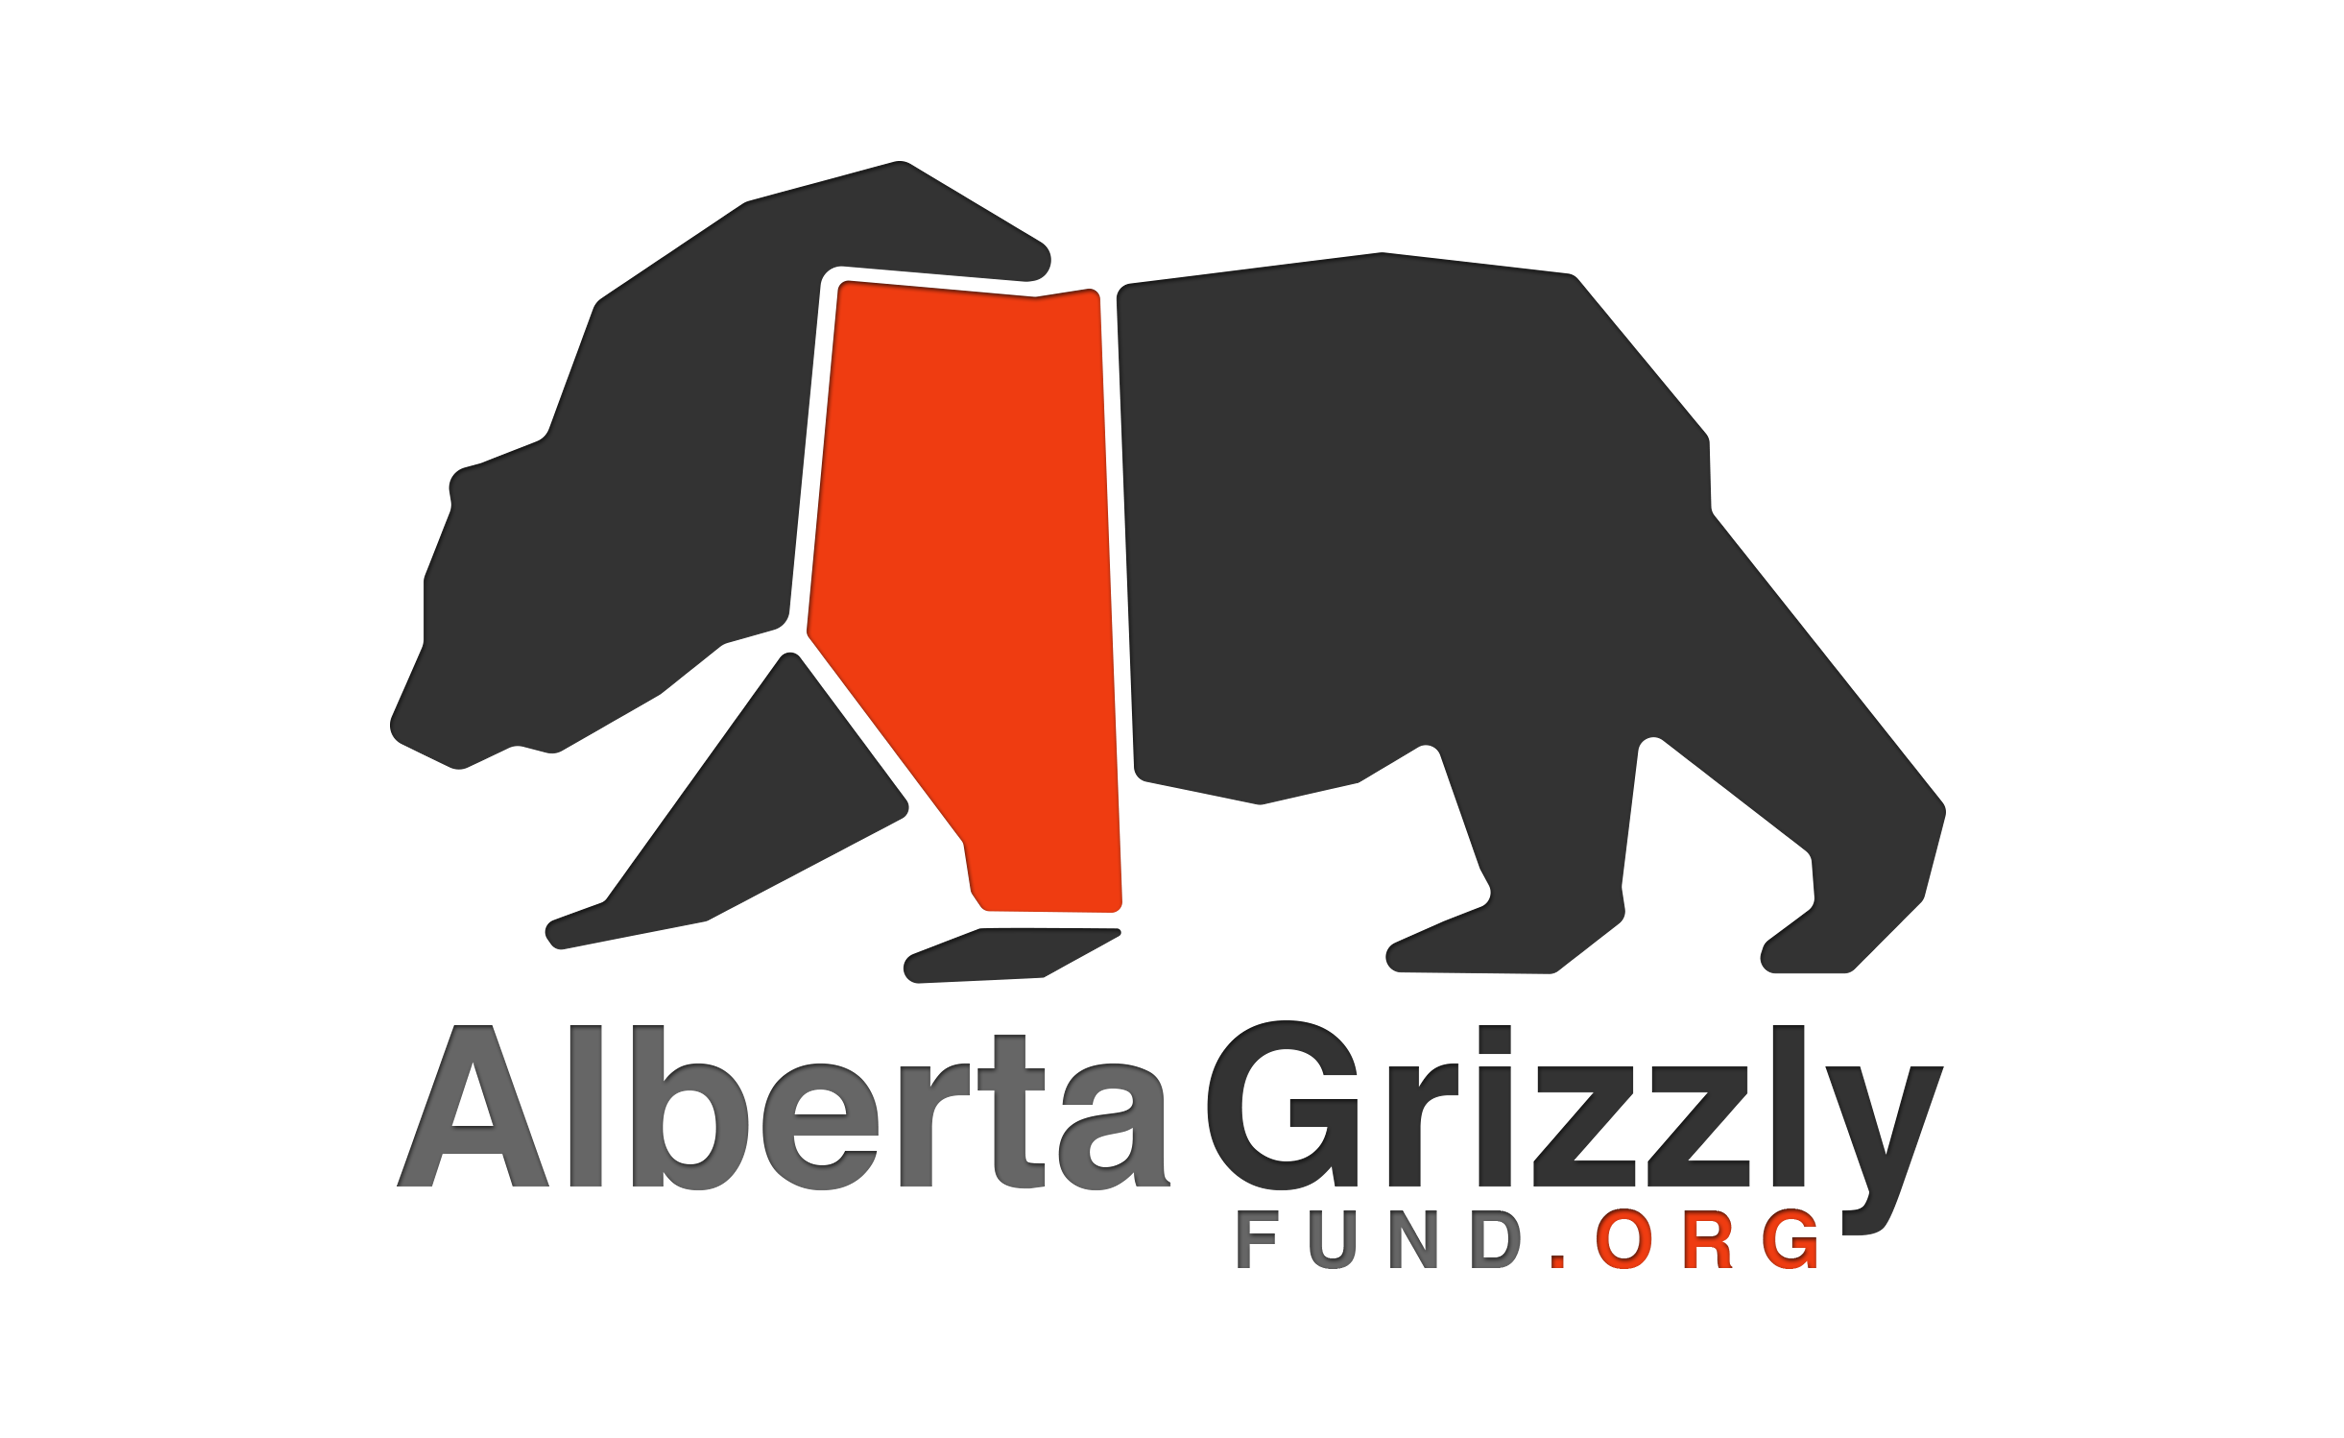 Alberta Grizzly Fund